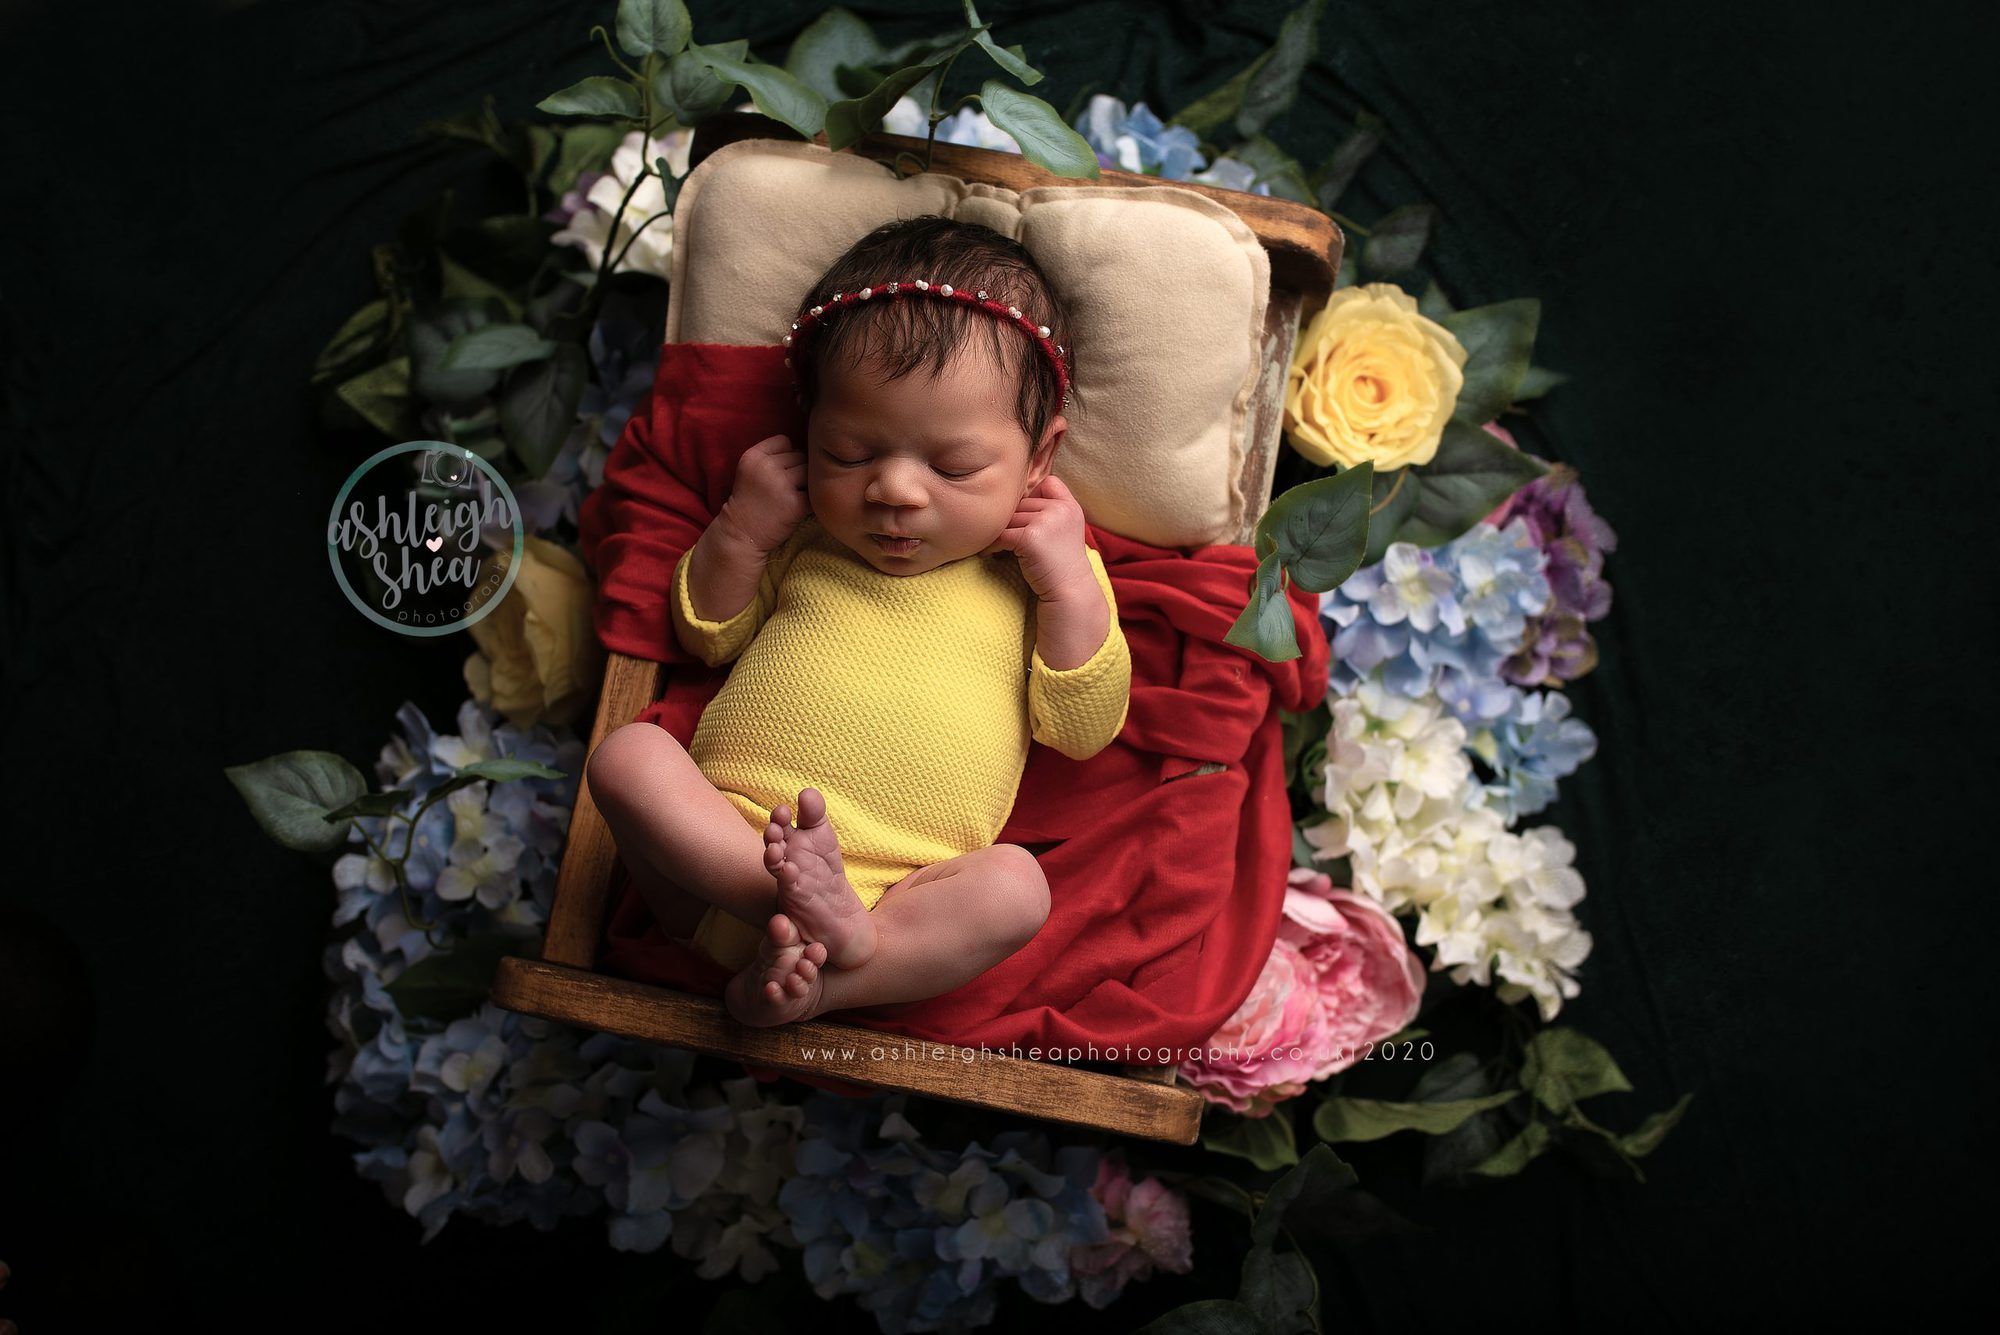 Snow White Inspired, Newborn Pictures, Baby Girl, Ashleigh Shea Photography, London, Kent,